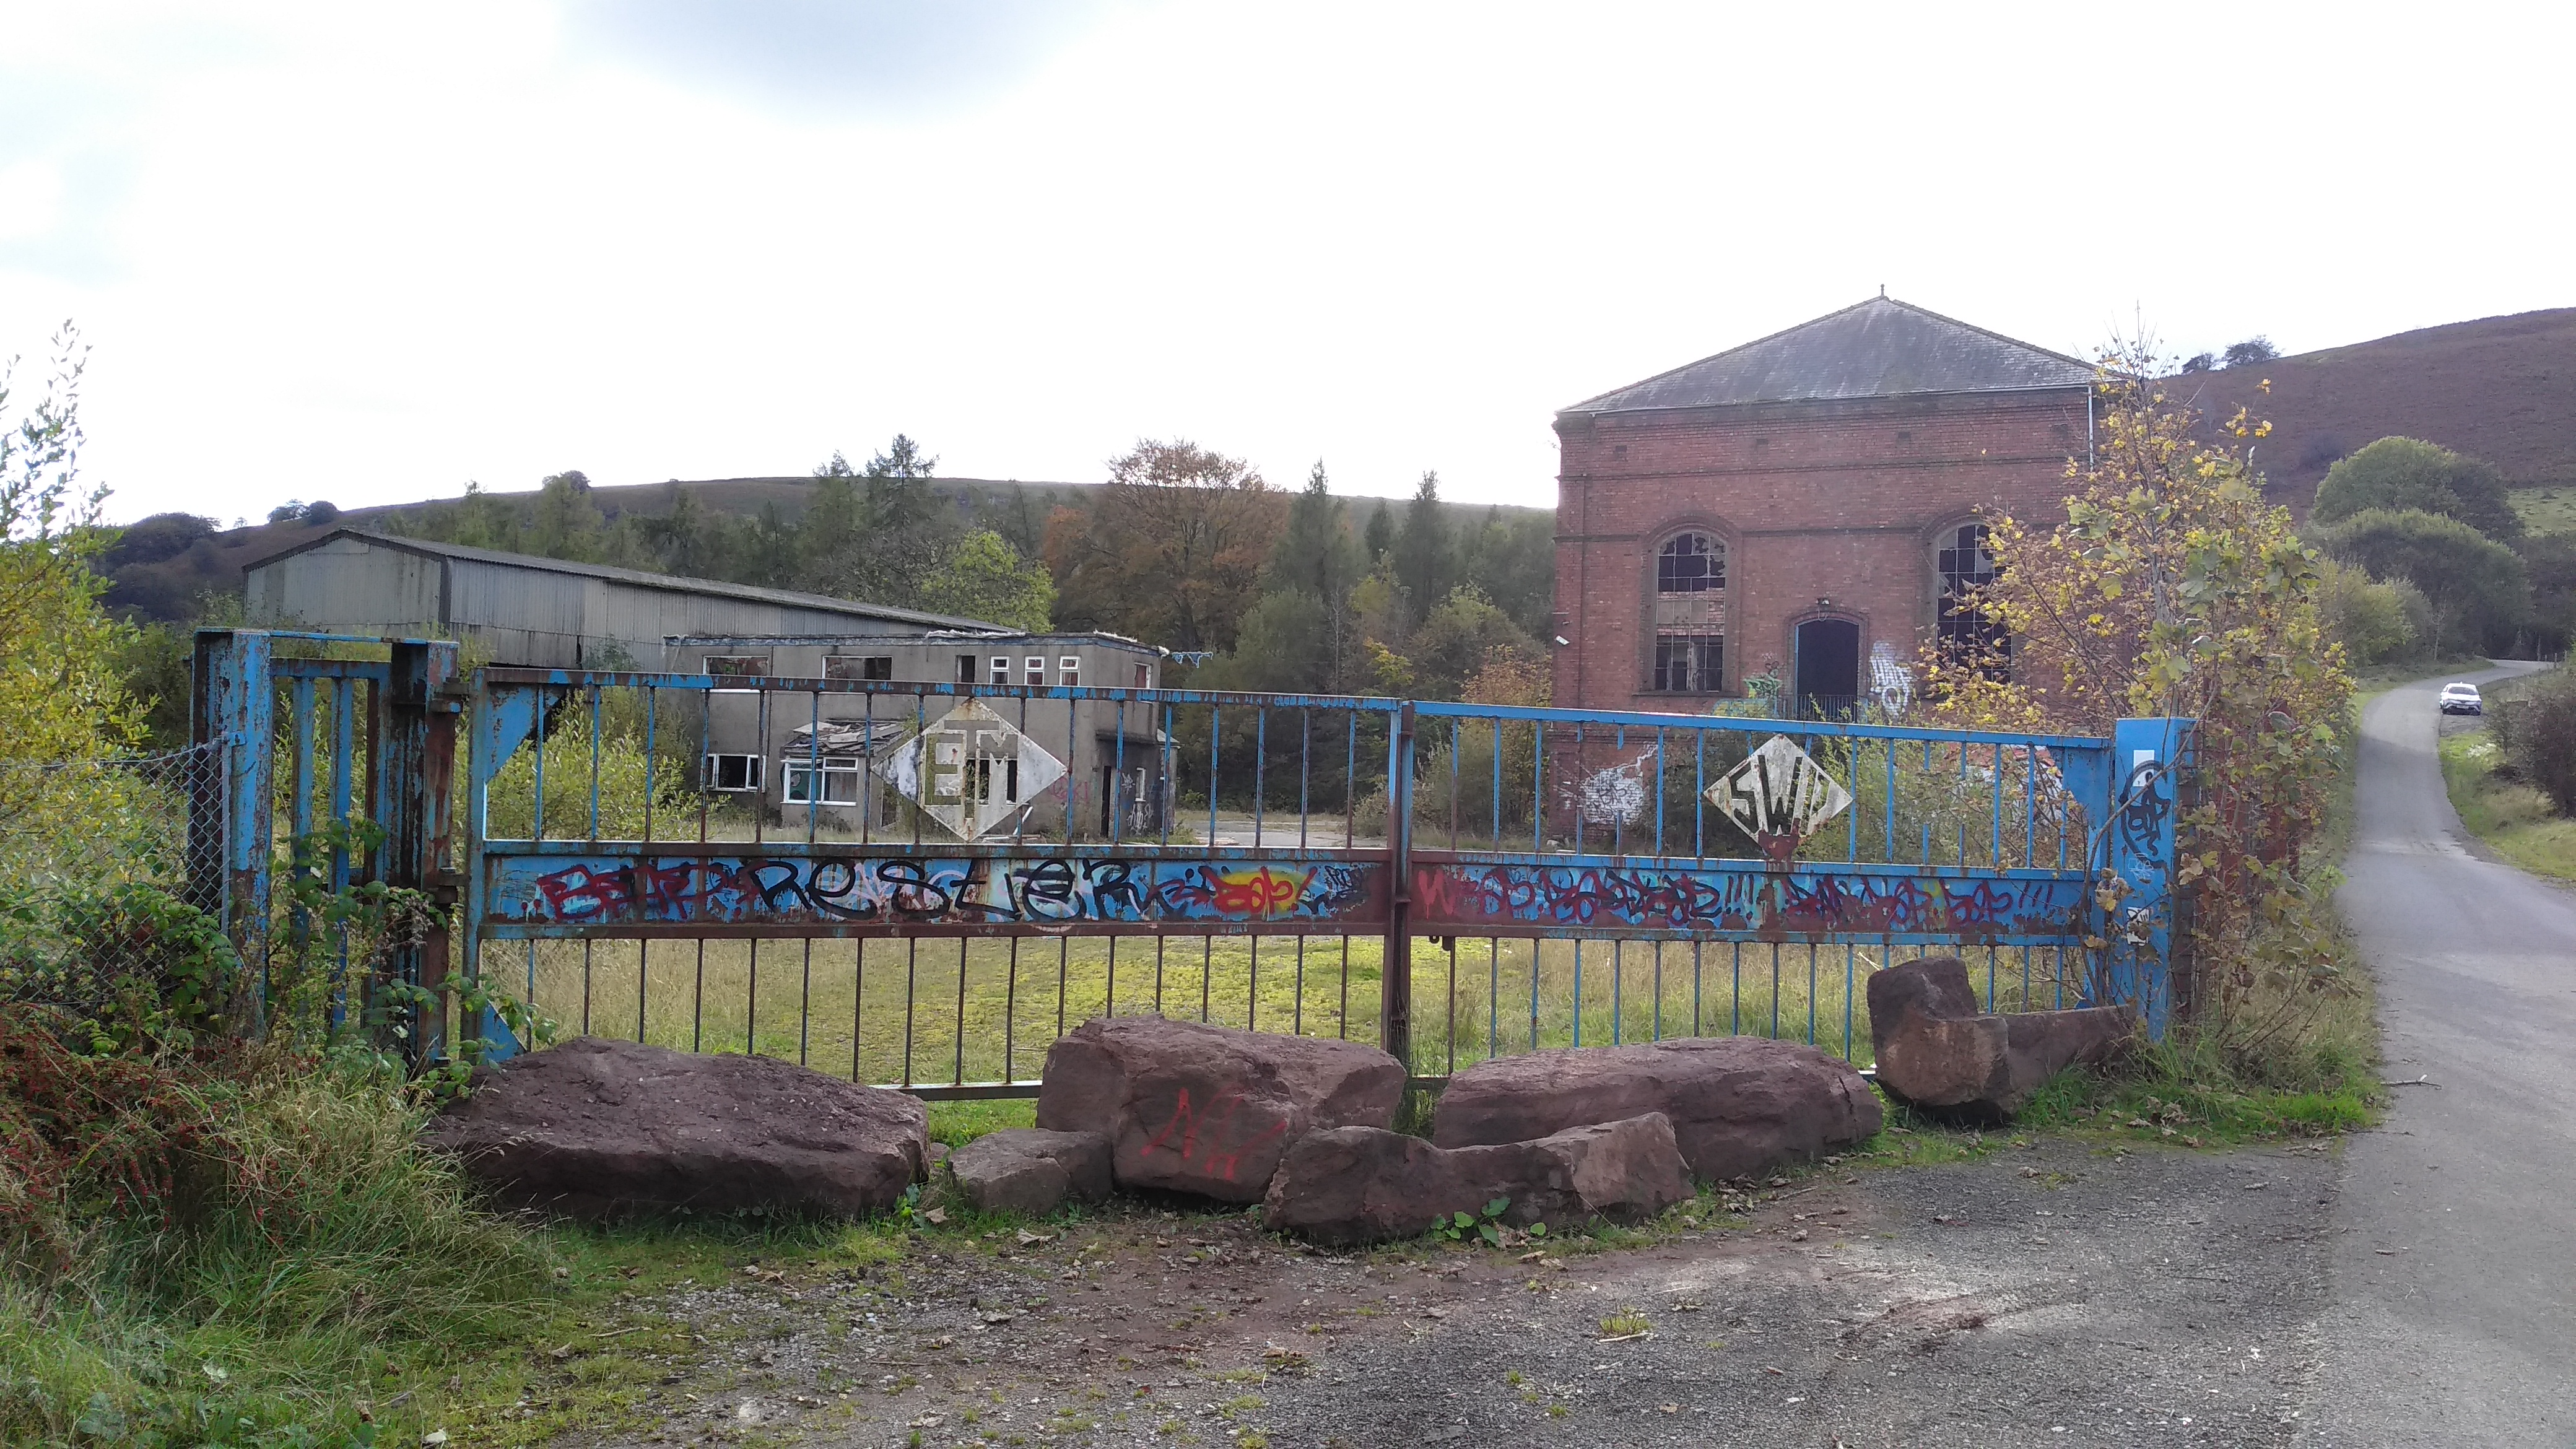 20191020 Former colliery engine house at ETM Steel Fabrication 3.jpg This file has no , and may be lacking other information. Please